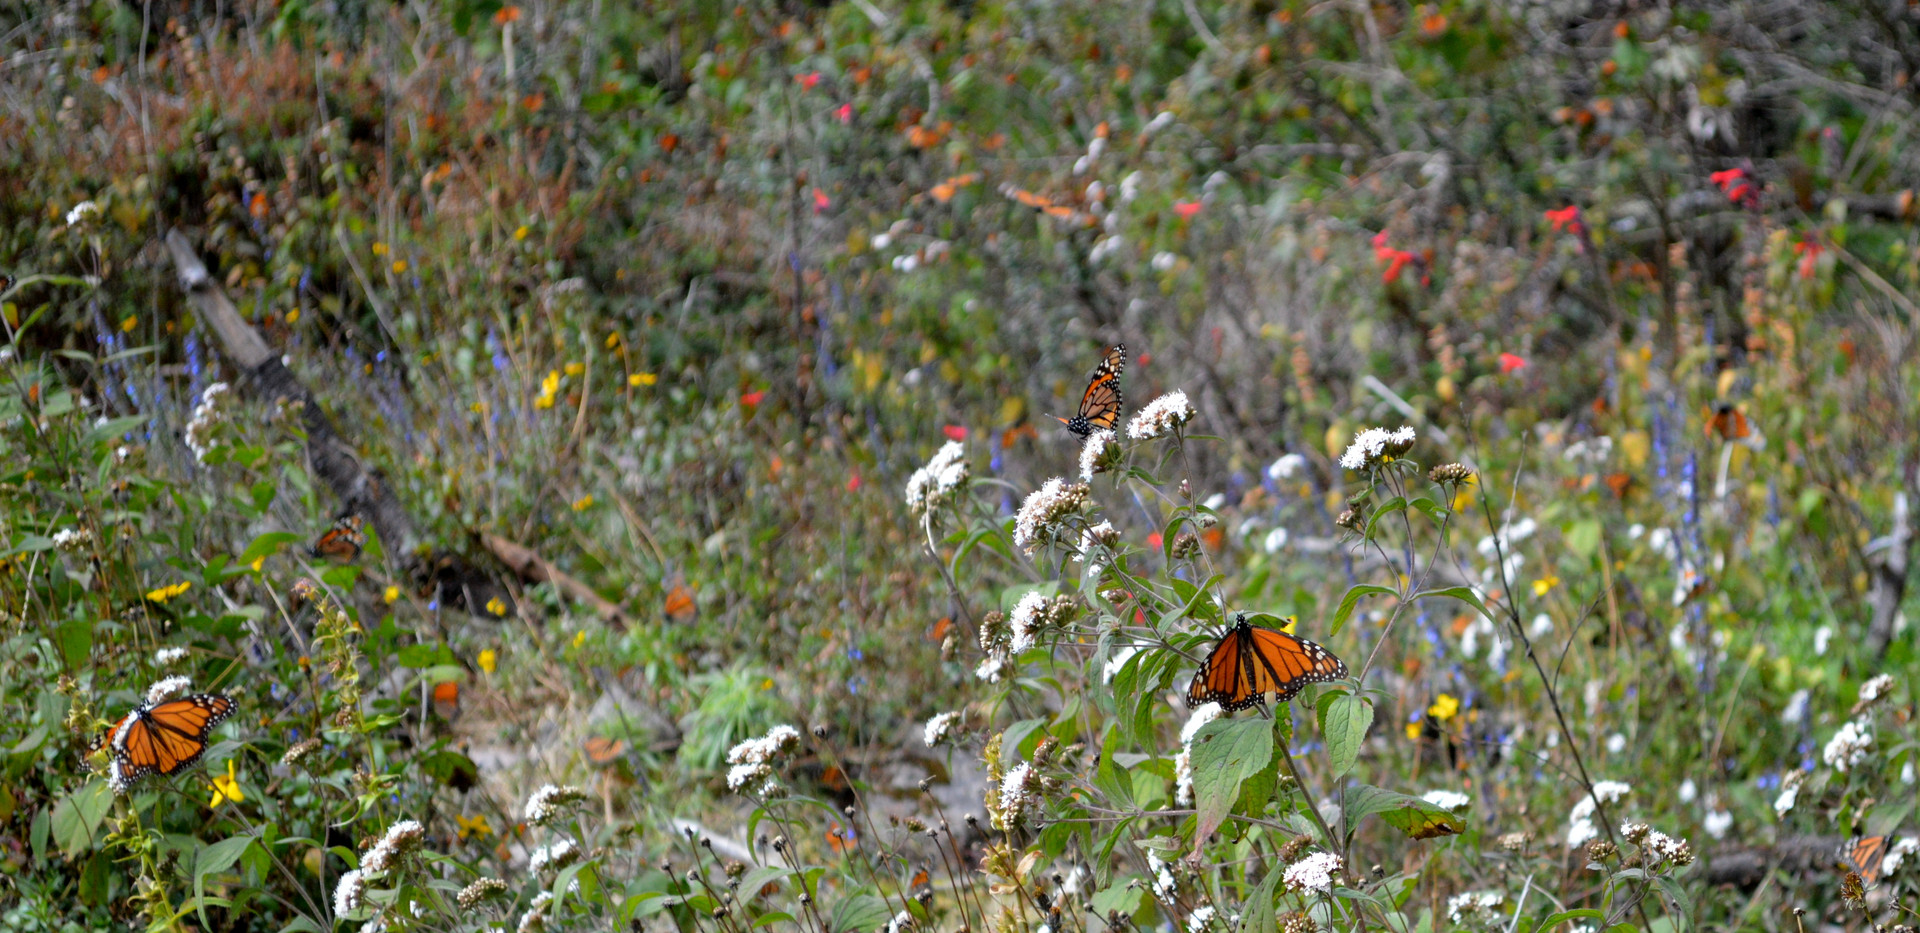 Sierra Chincua Monarch Butterfly Reserve